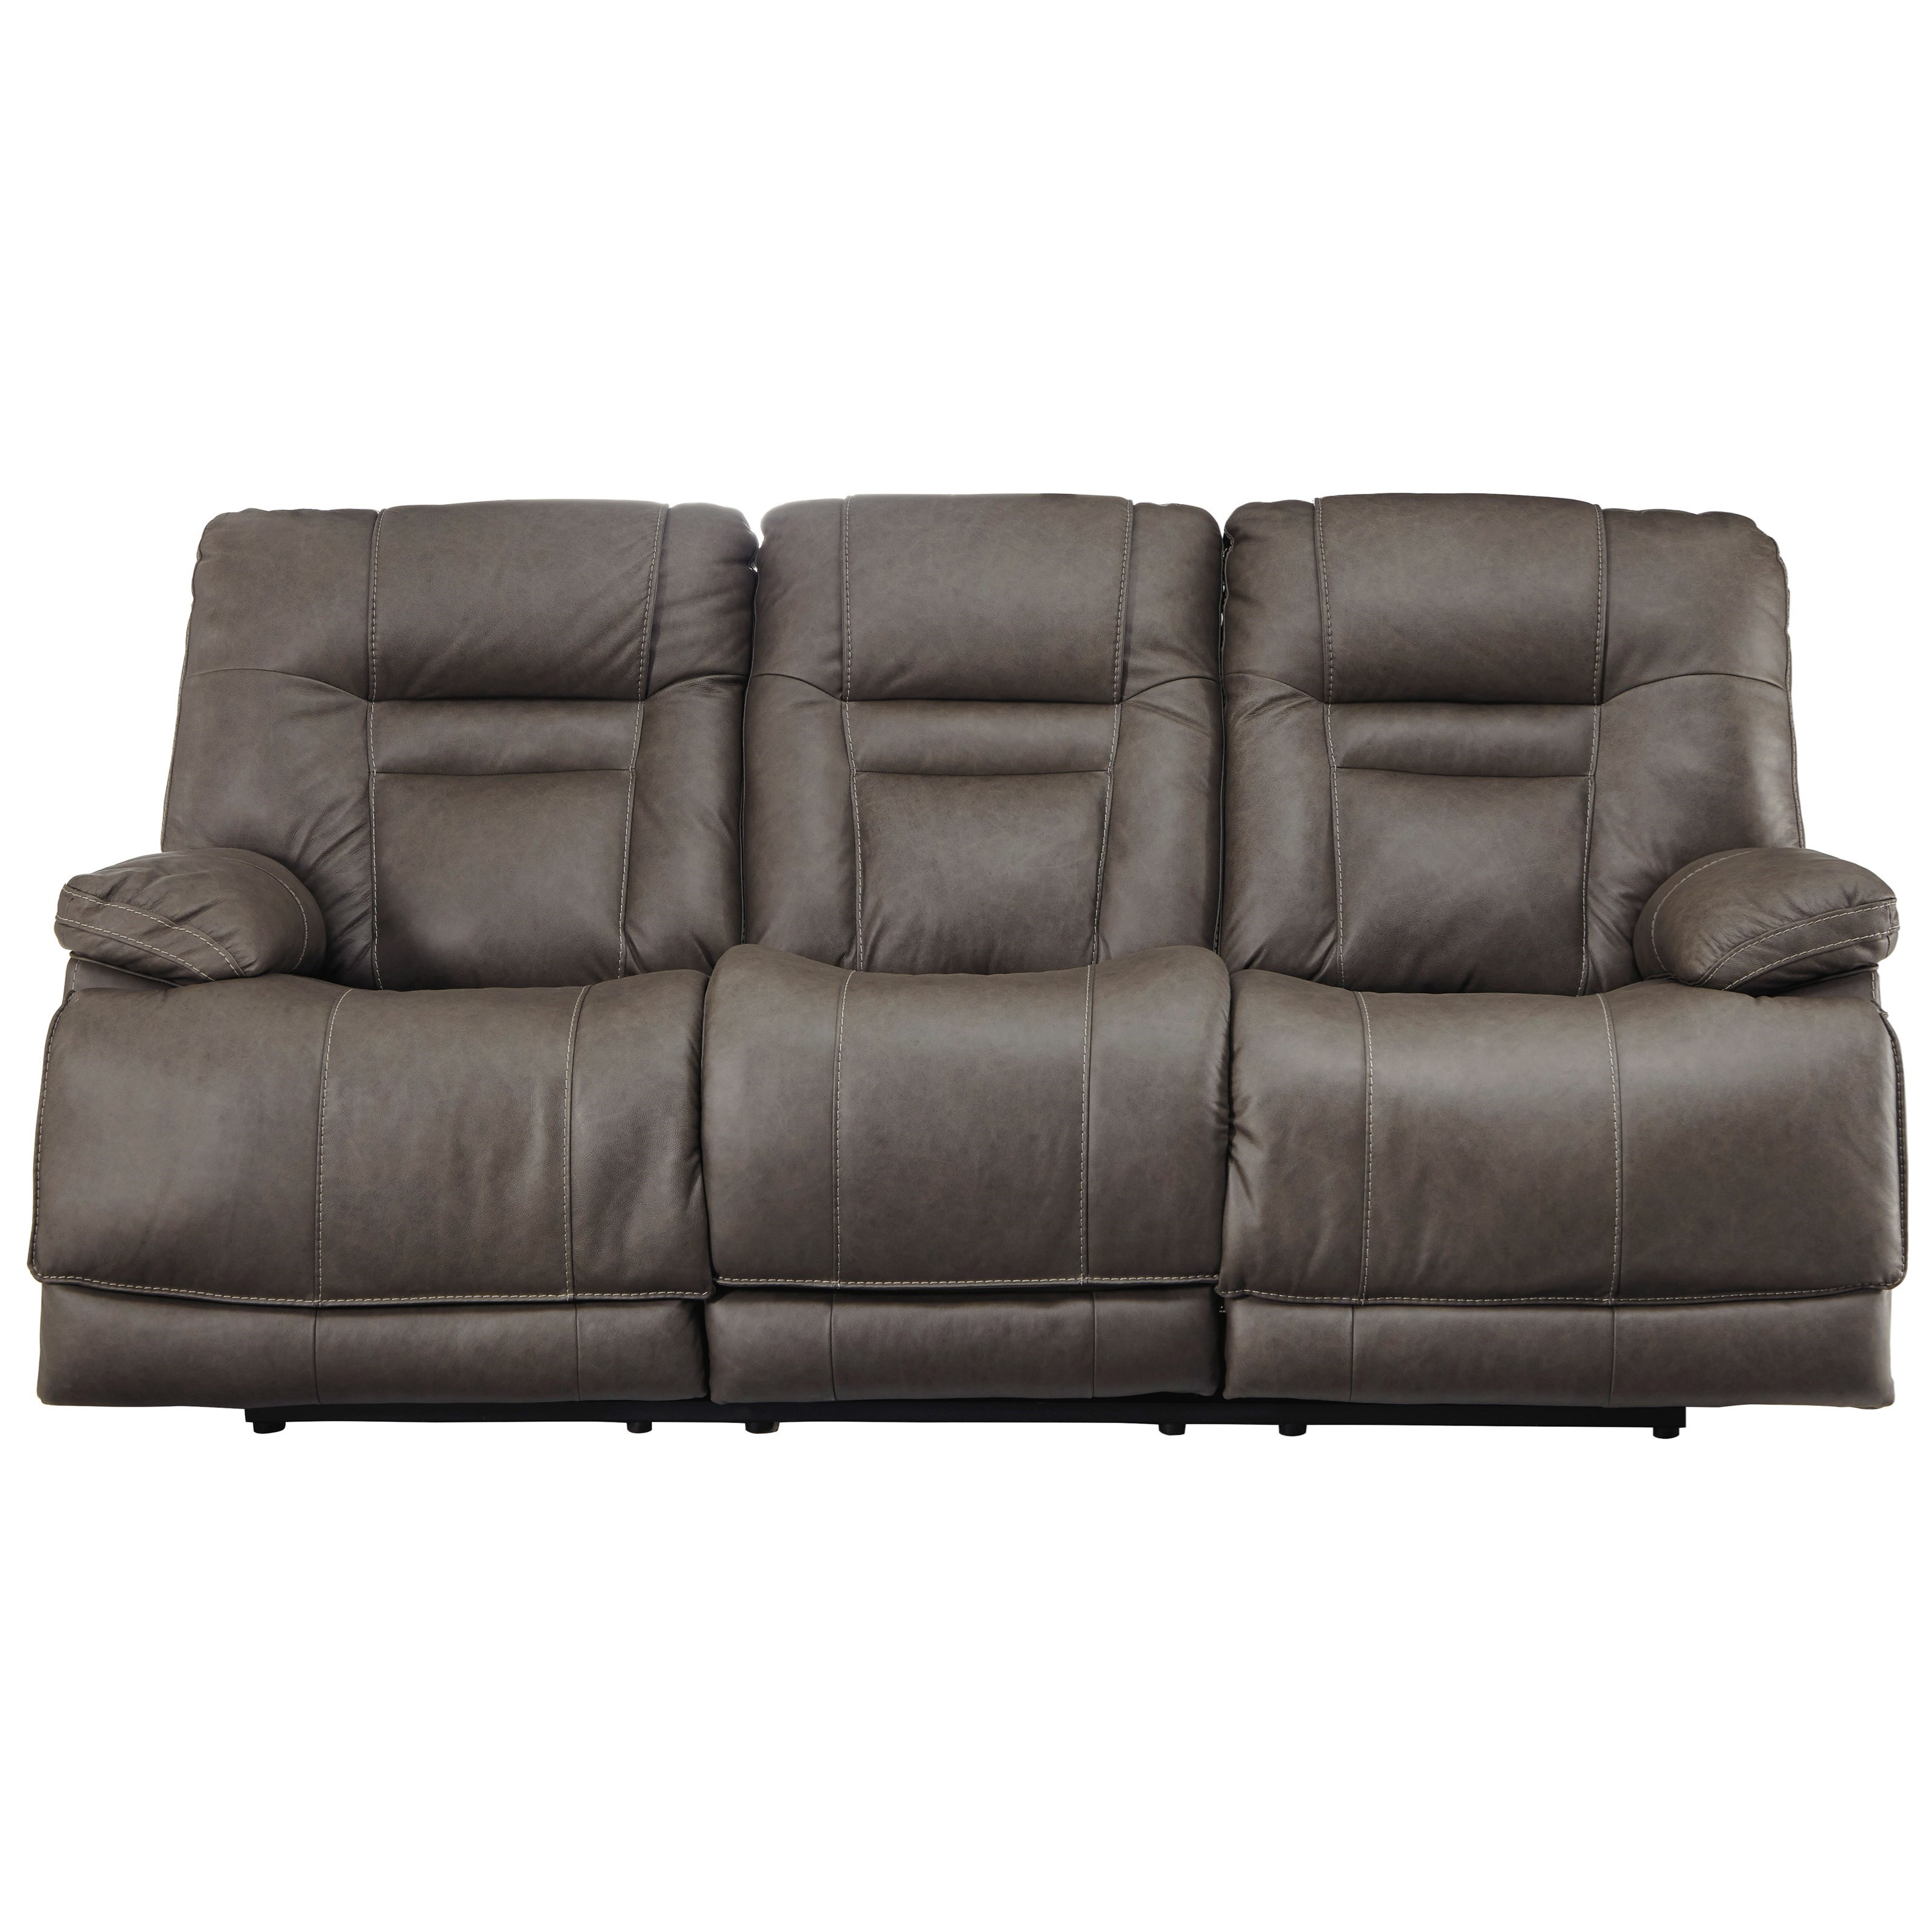 Watson TRIPLE Power Reclining Leather Sofa by Signature at Walker's Furniture